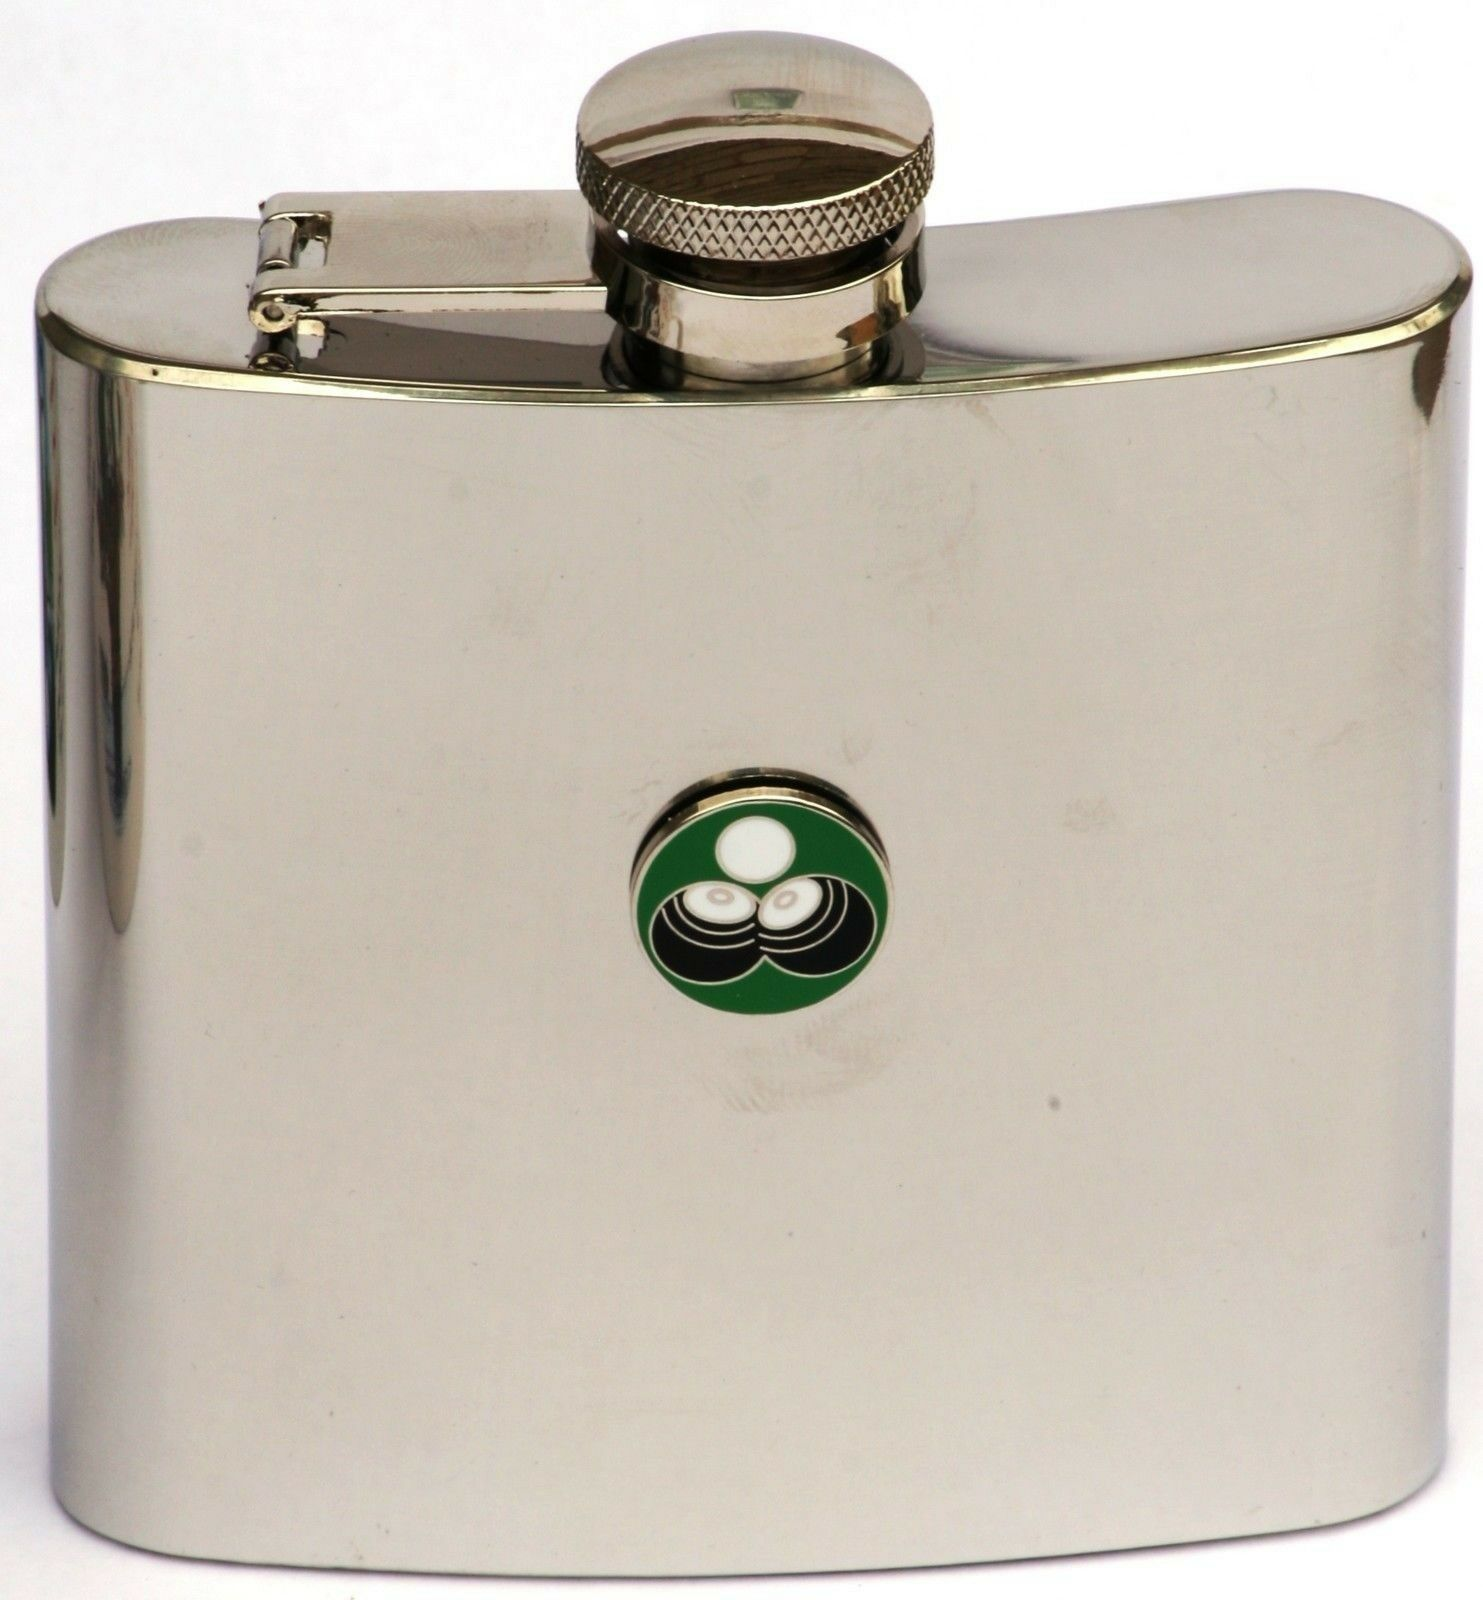 Bowls Green Enamel Emblem On Flask 6oz FREE ENGRAVING